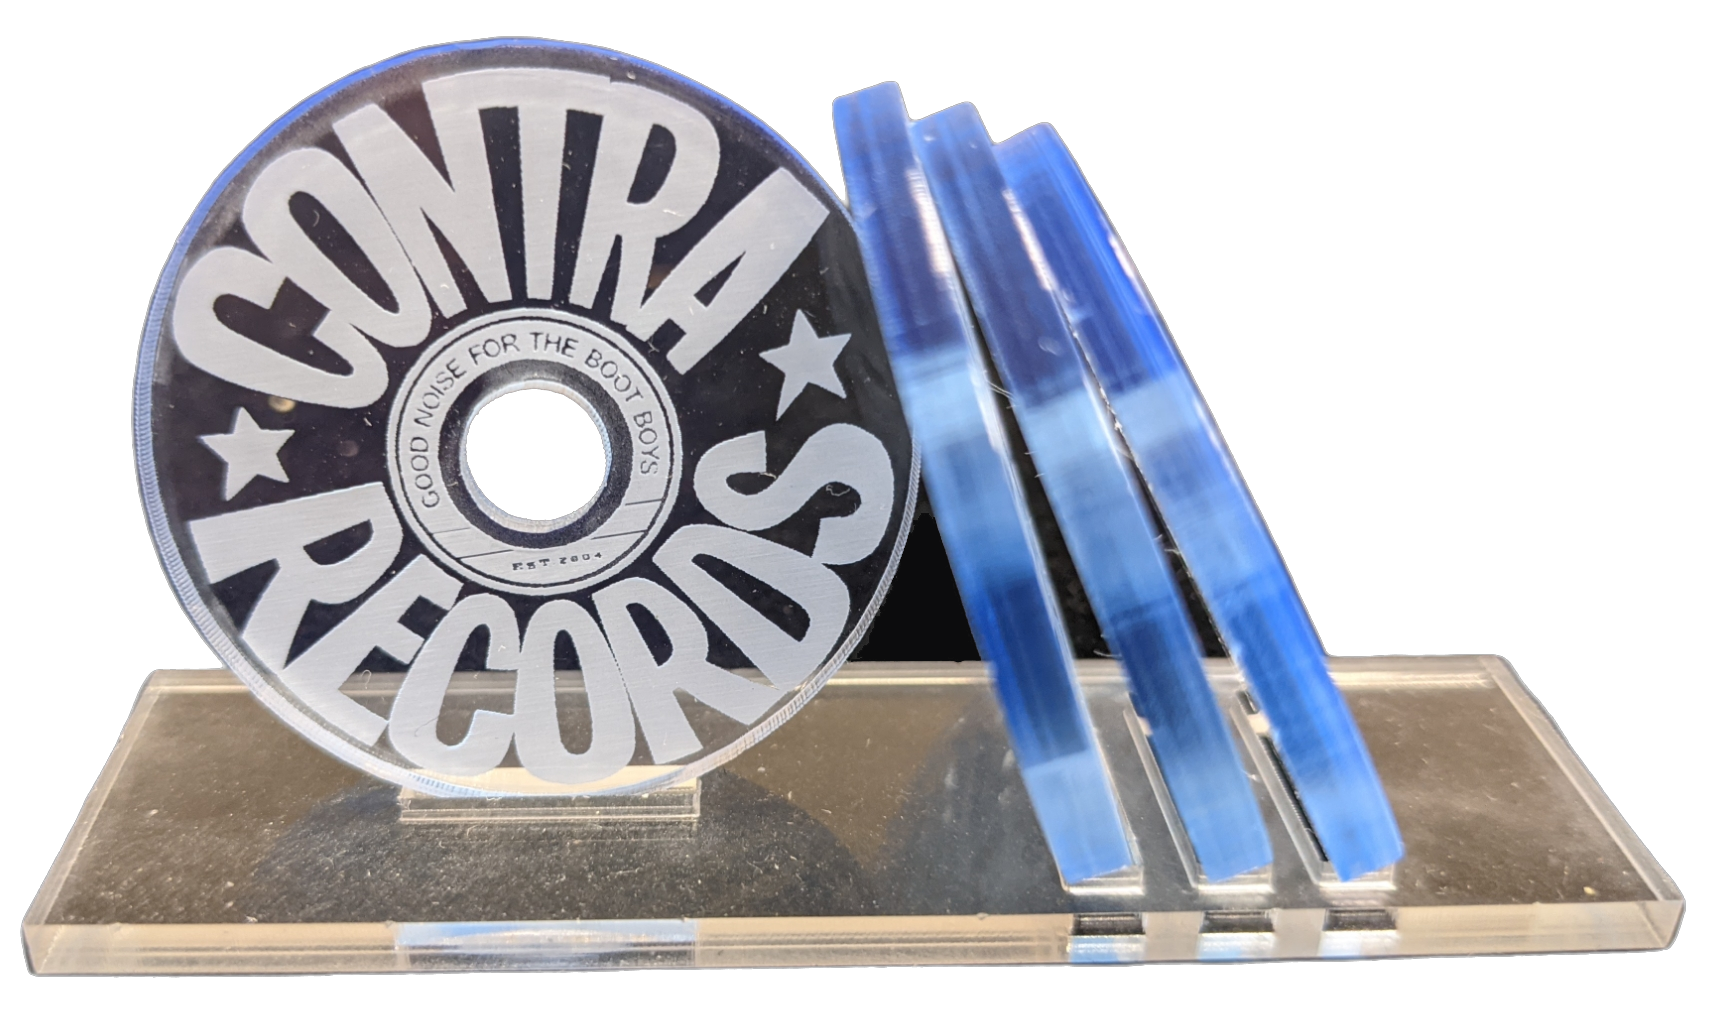 """Contra Records - """"Good Noise for the Bootboys 2018"""" - Single 45rpm Adapter ice blue"""